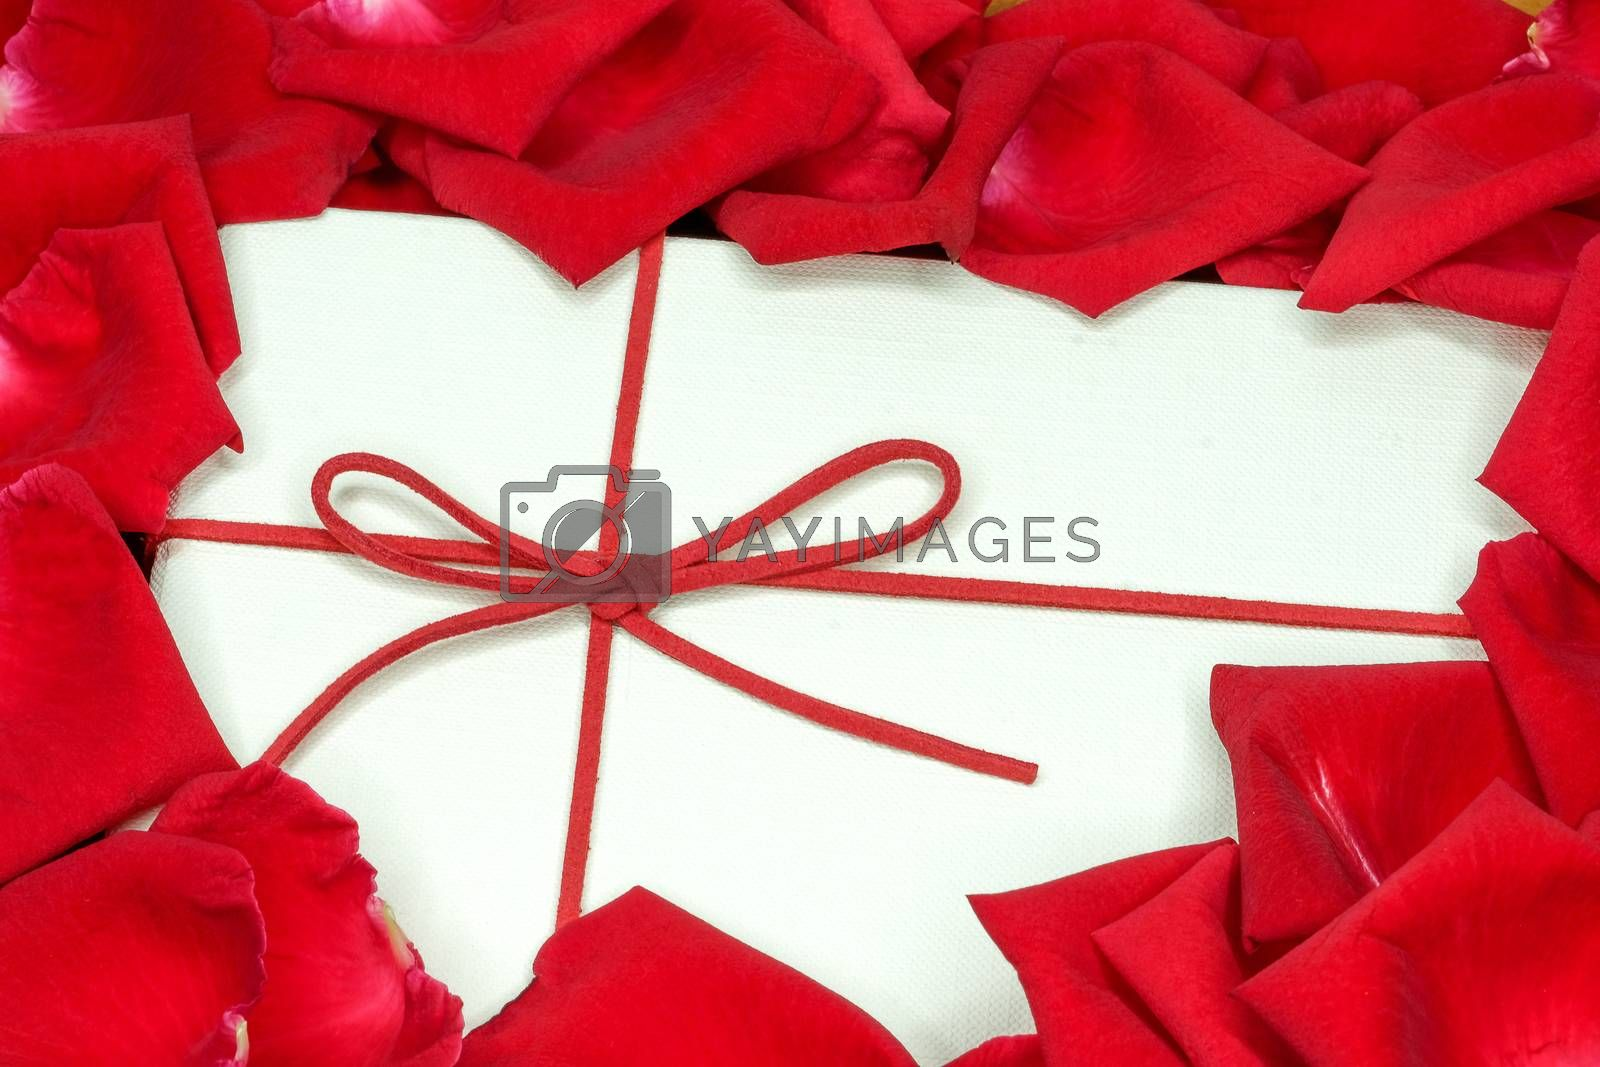 a white box and red rose petals by Nawoot